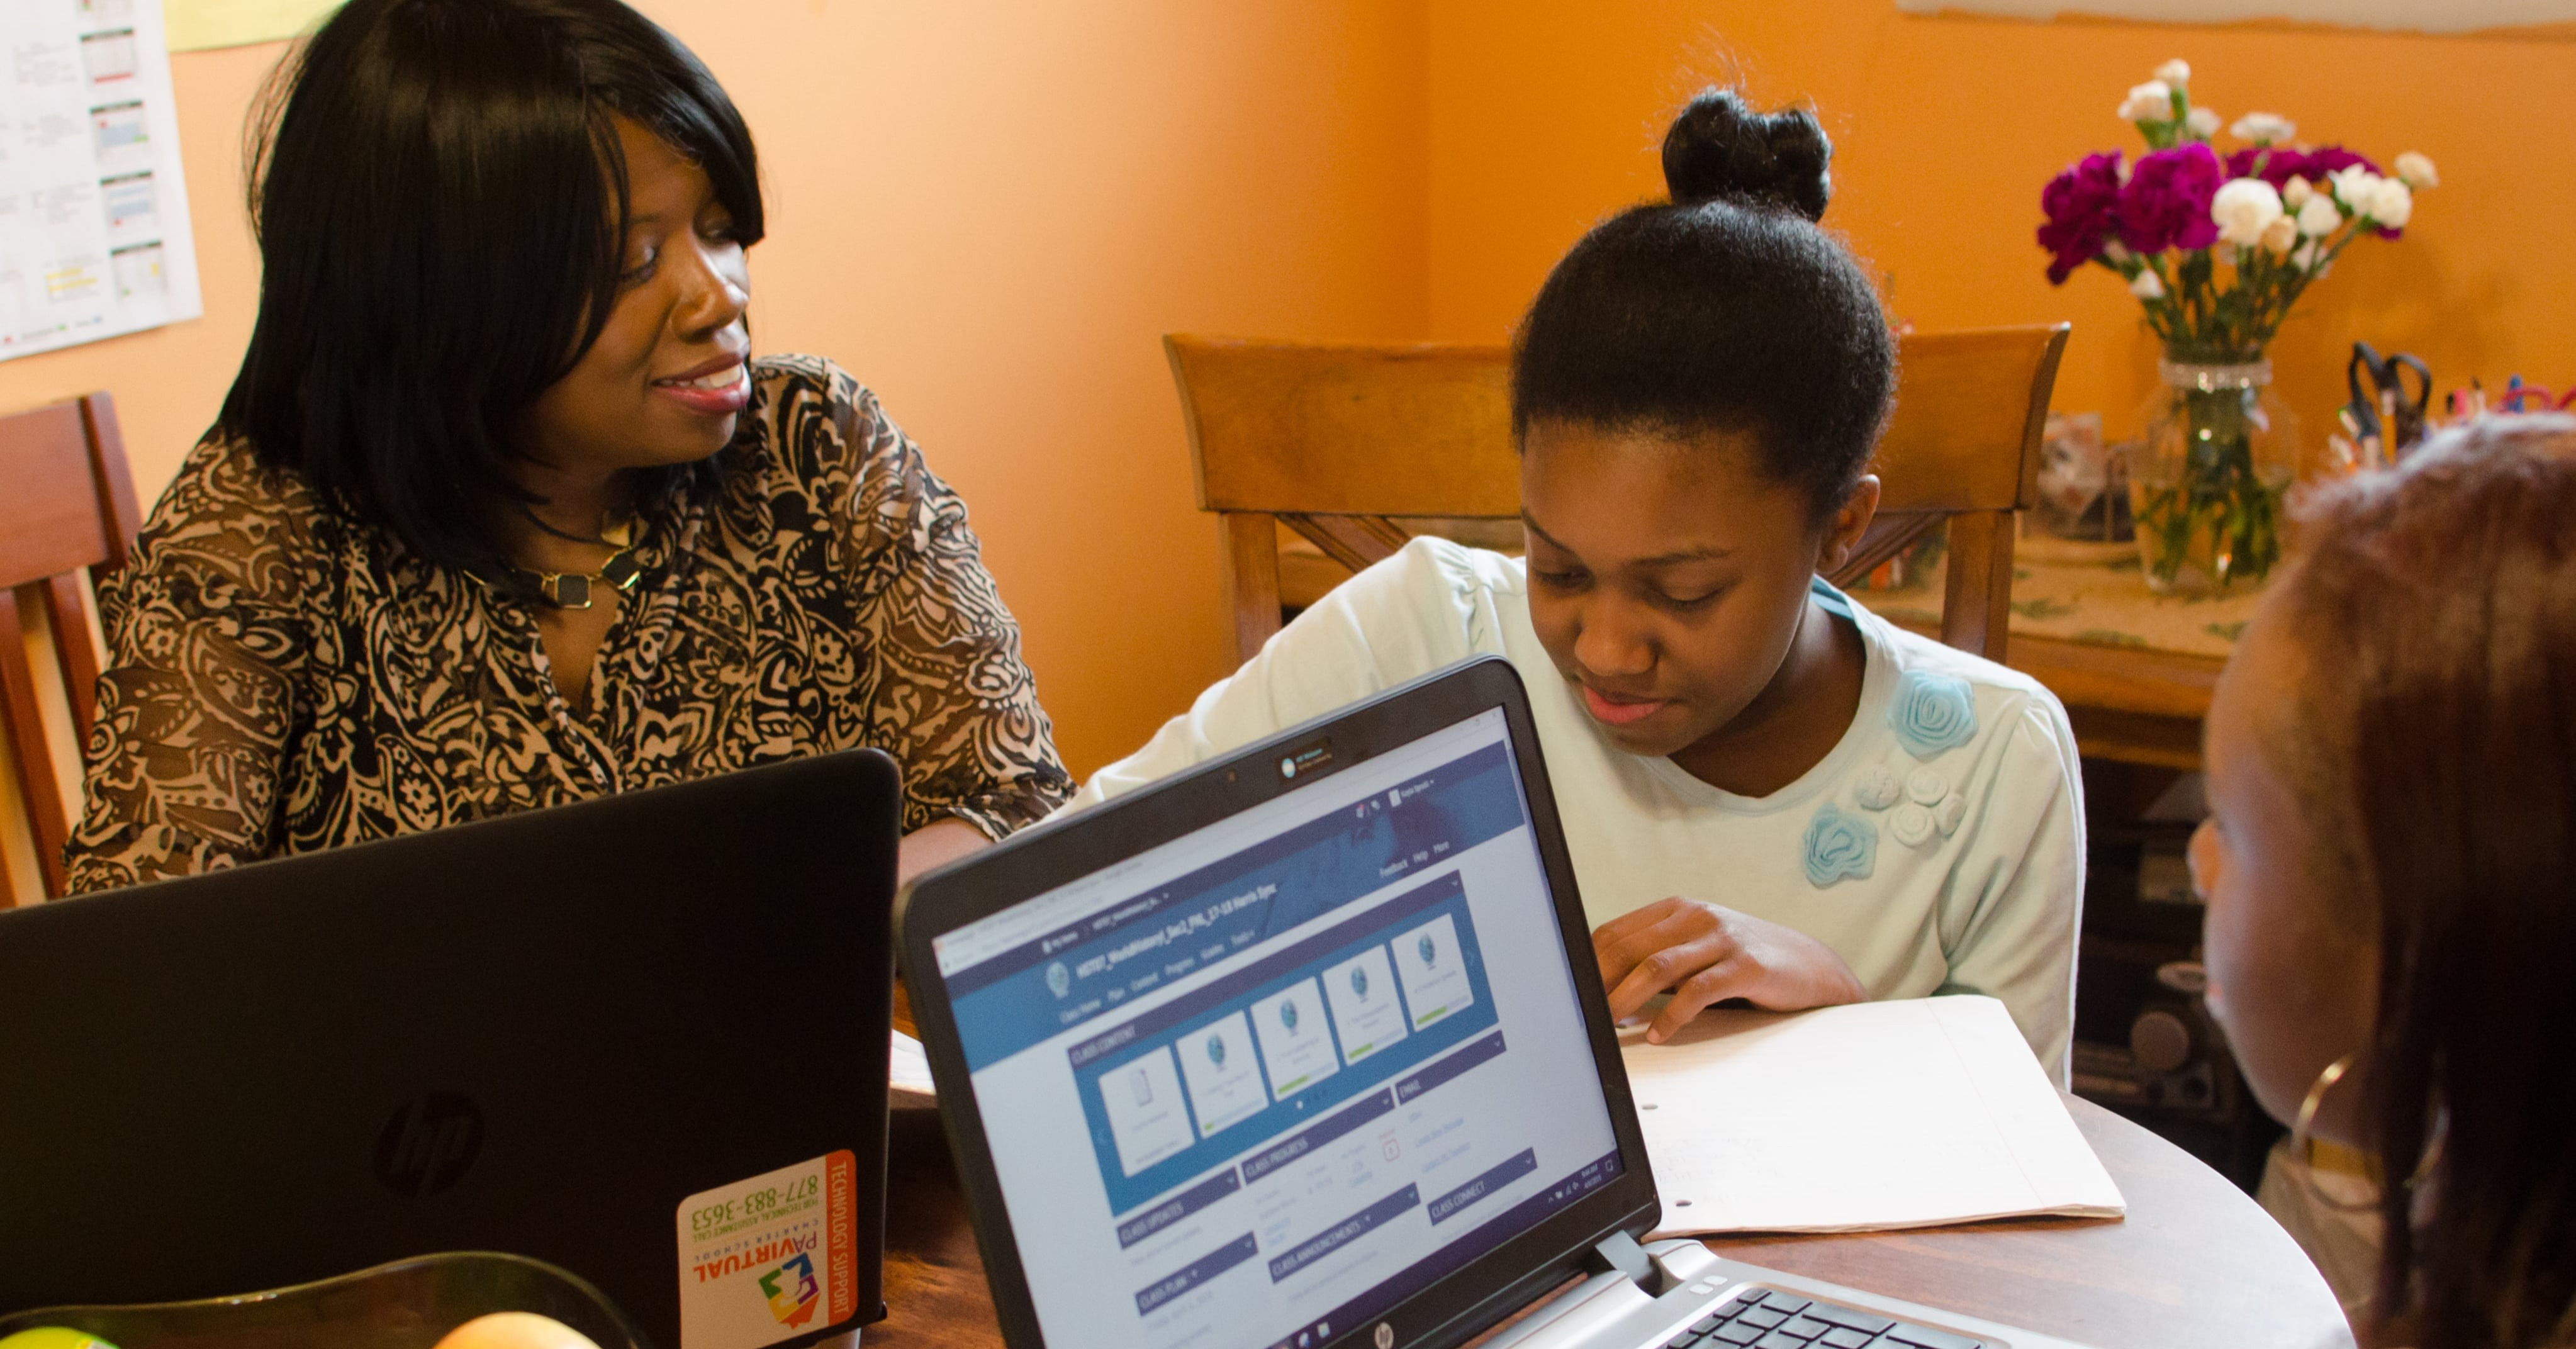 Frequently Asked Questions About Cyber Schools (In-Year Enrollment)